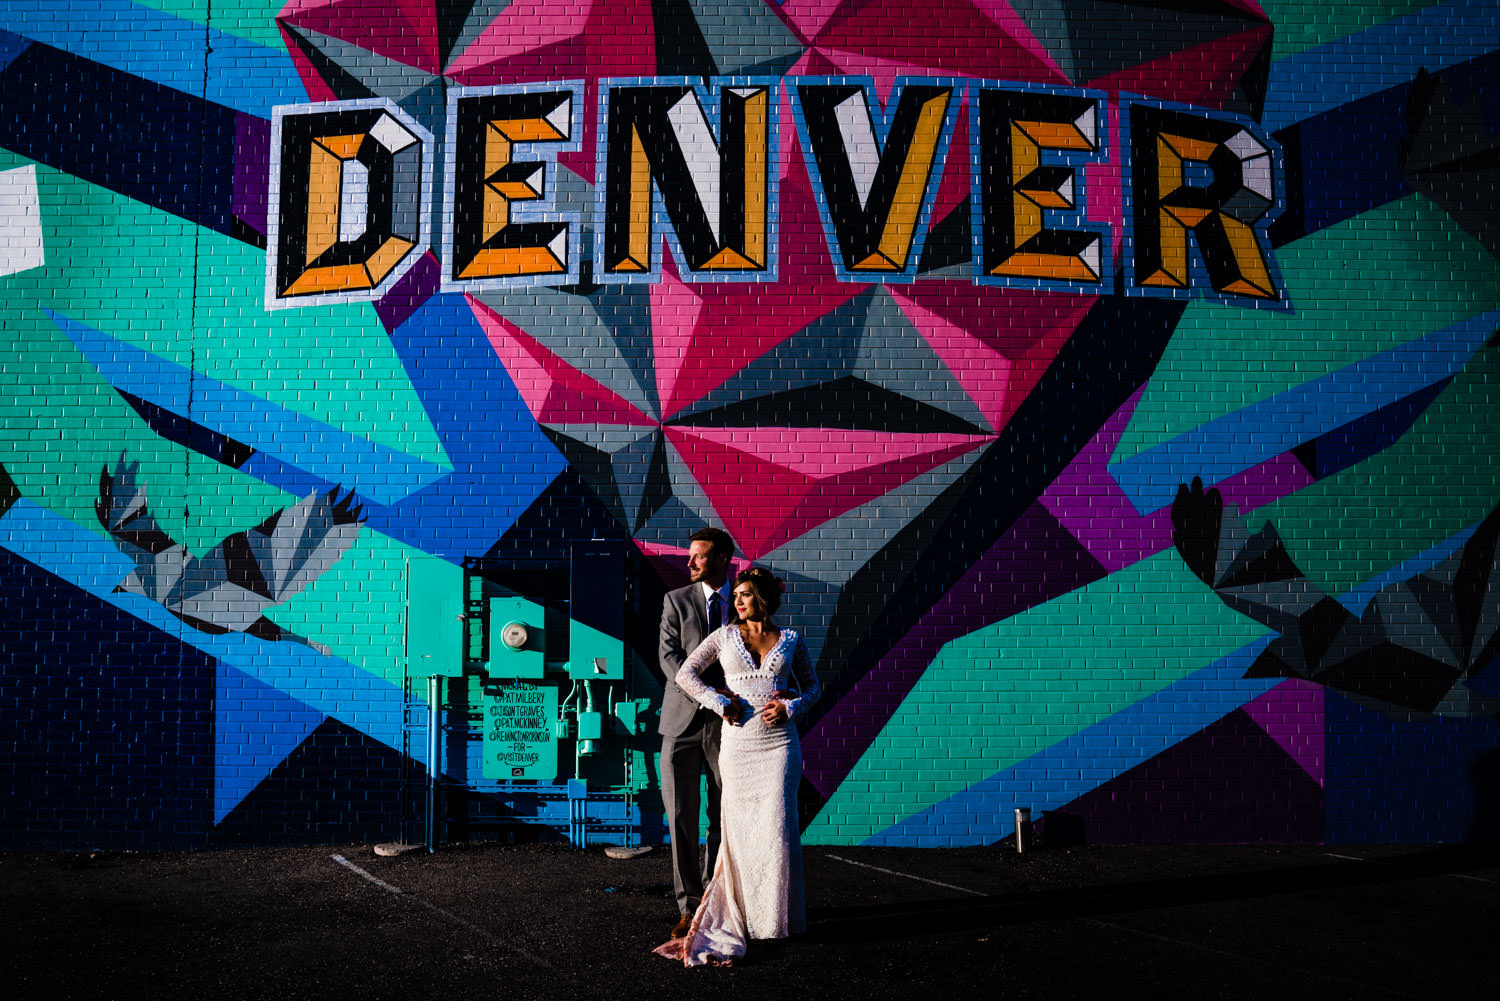 Downtown Denver Graffiti wall by Wedding Photographer JMGant Photography